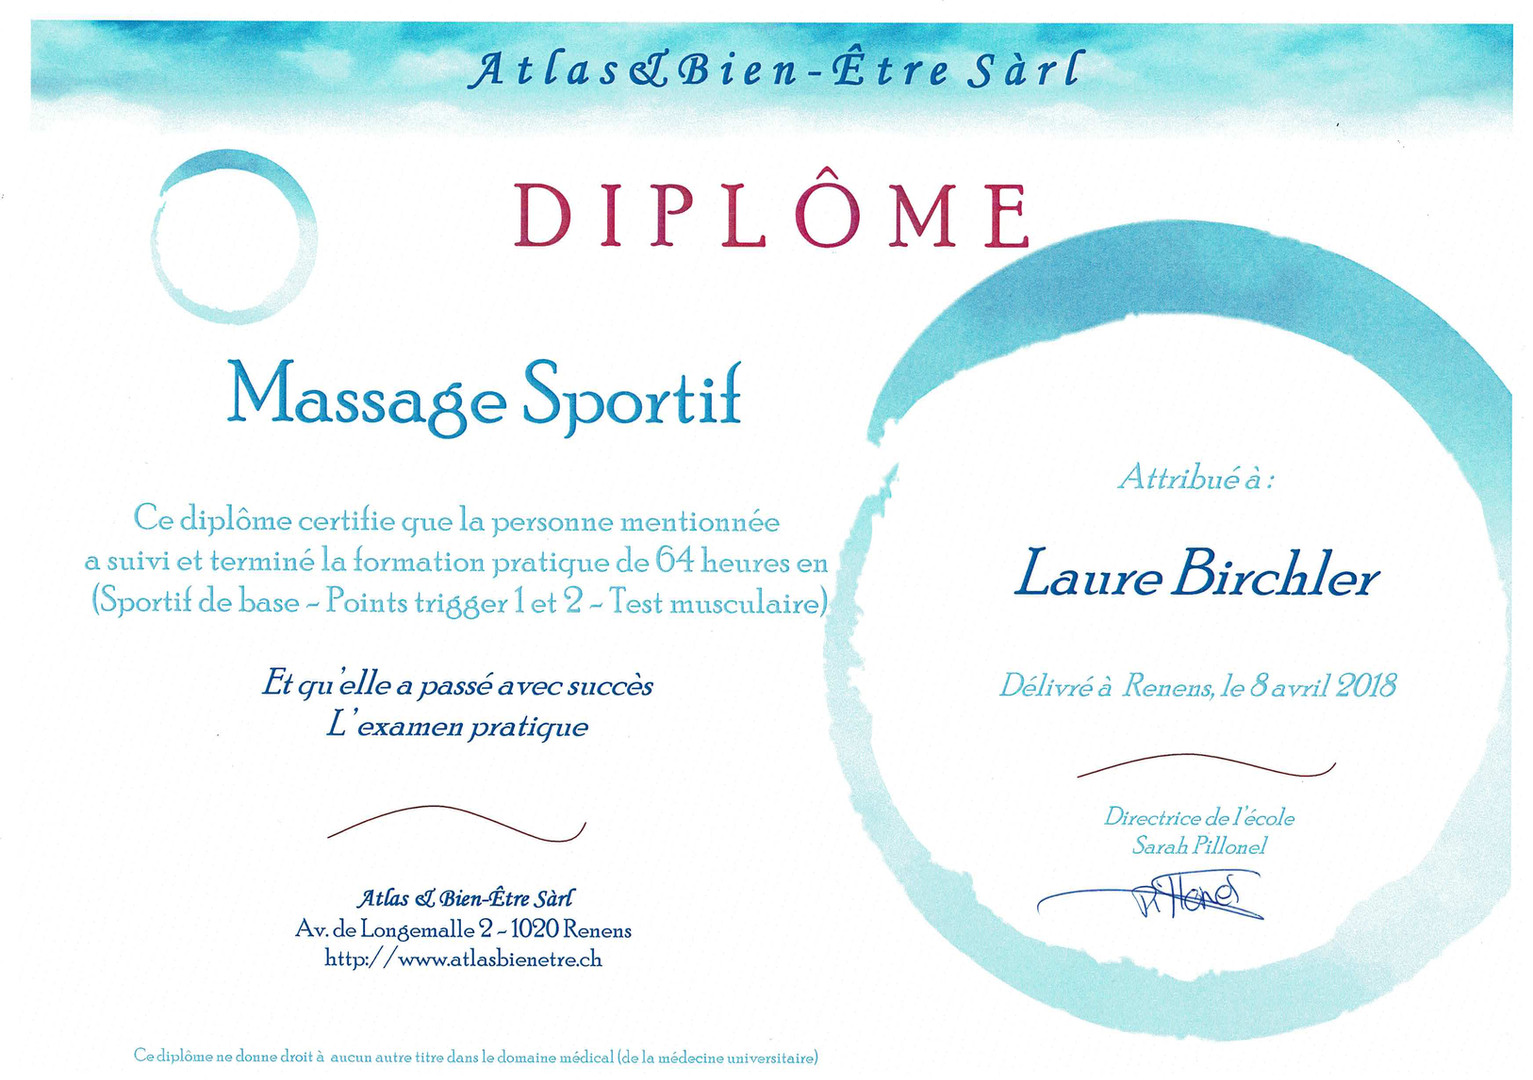 Massage sportif.jpg